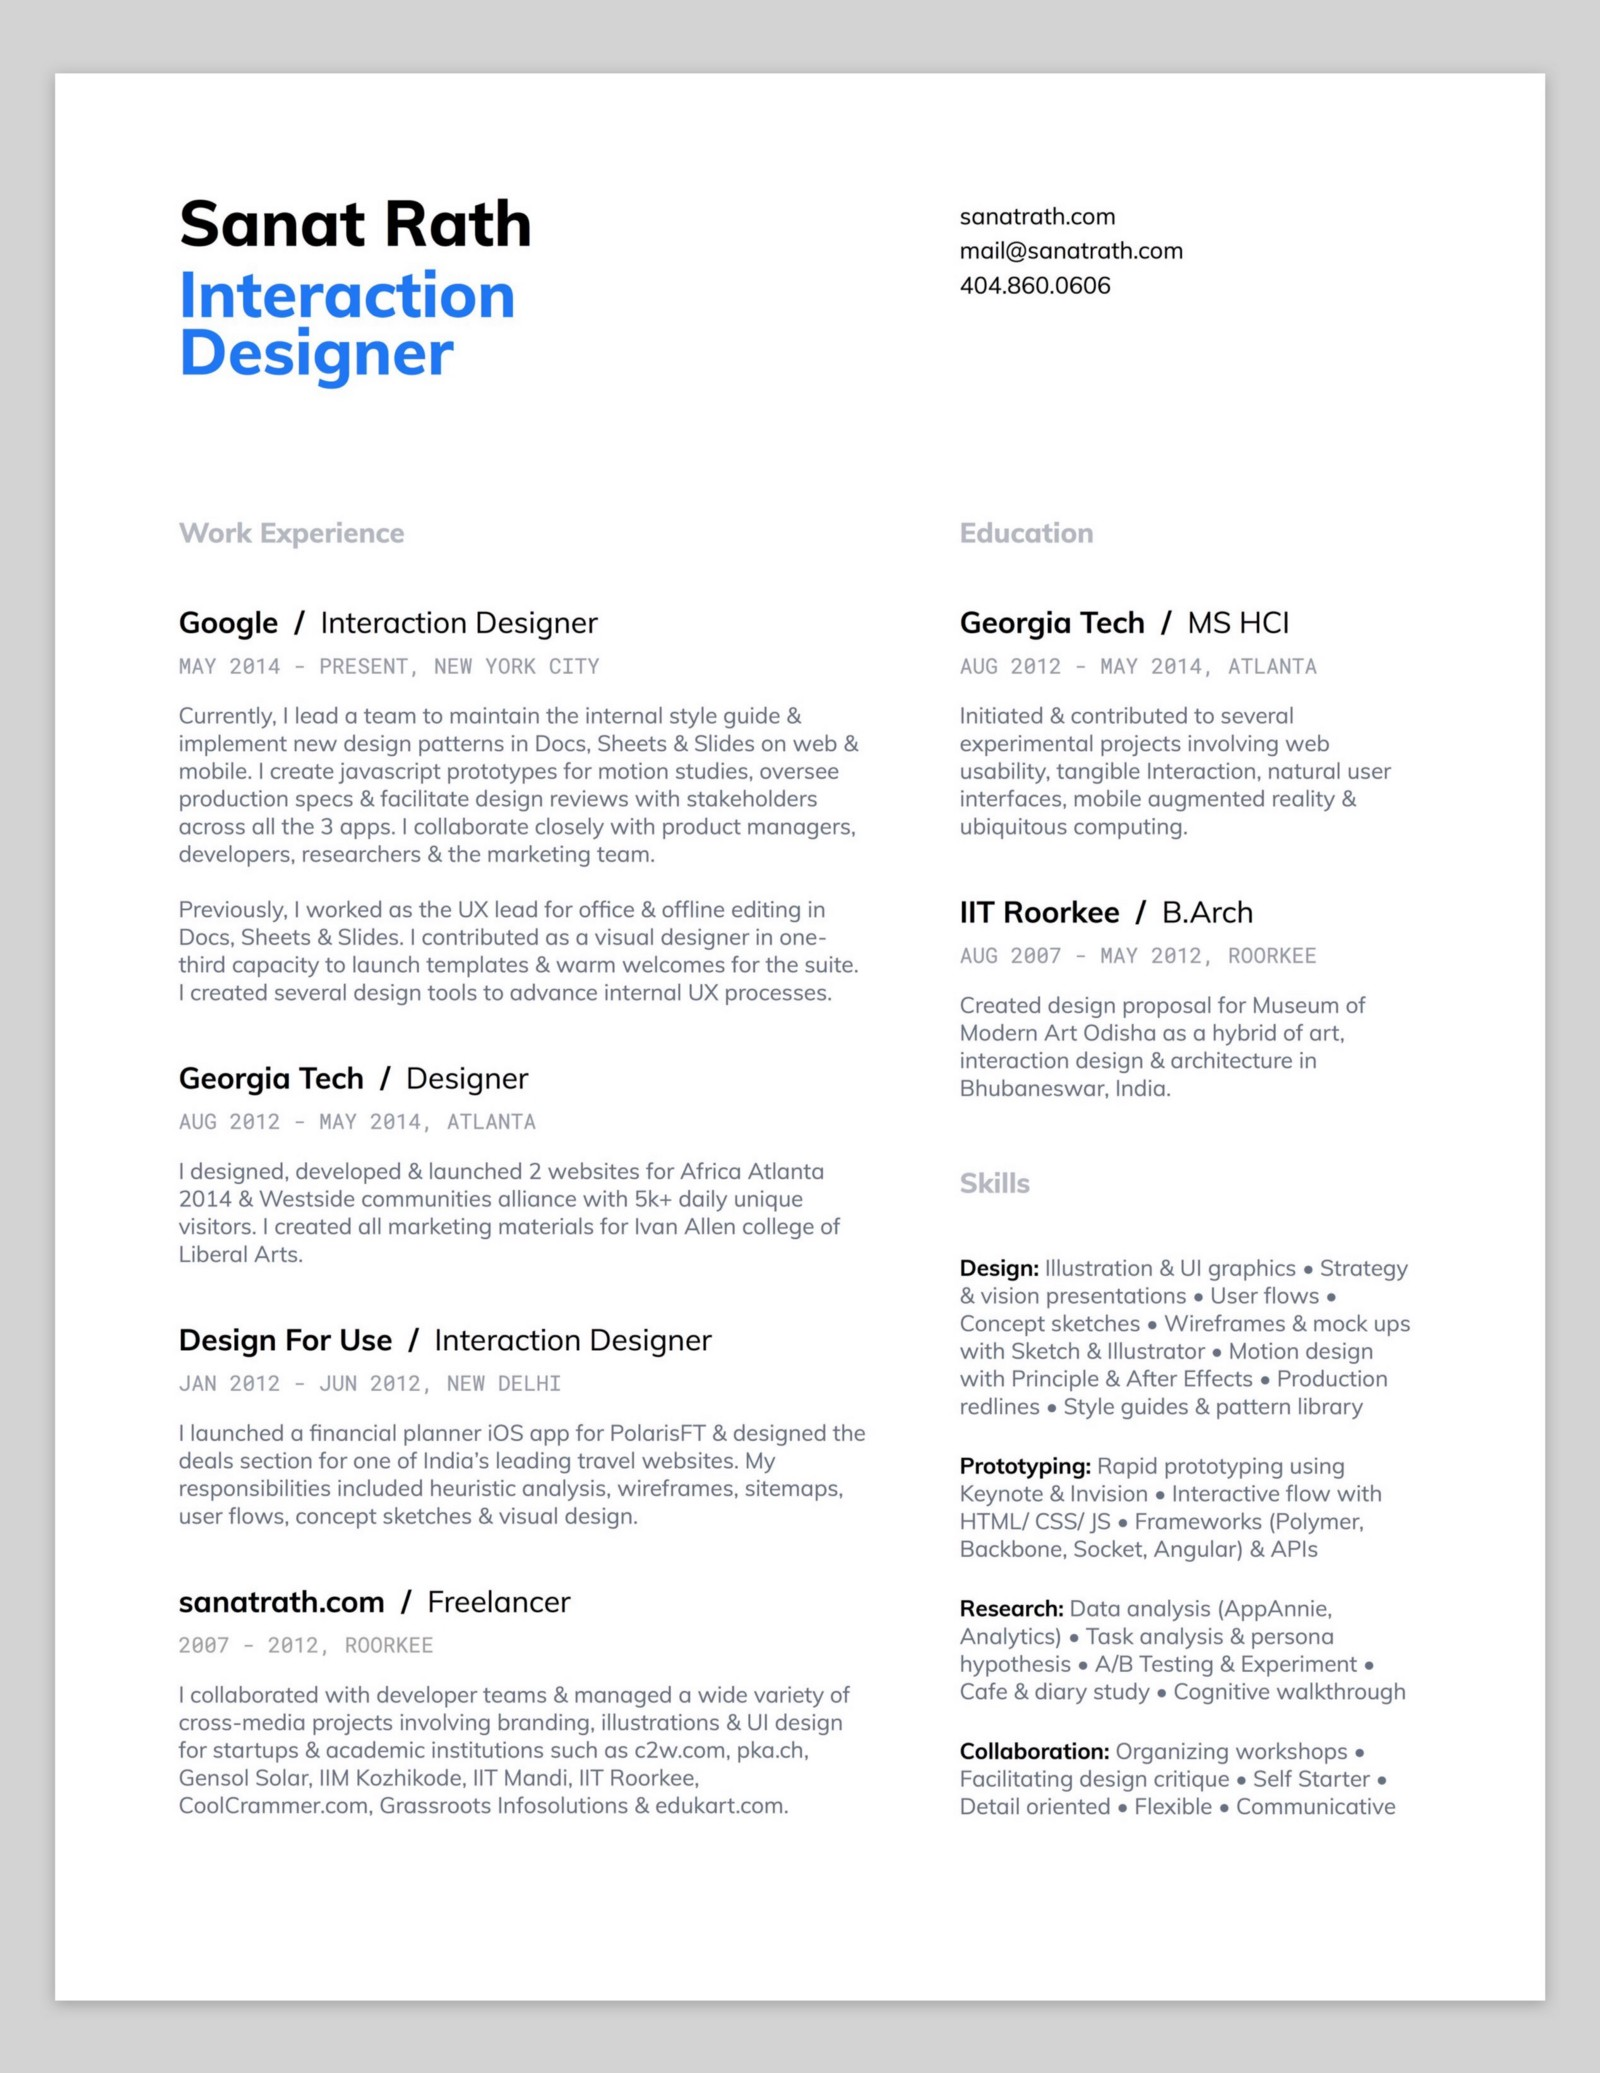 10 amazing designer resumes that passed google u2019s bar